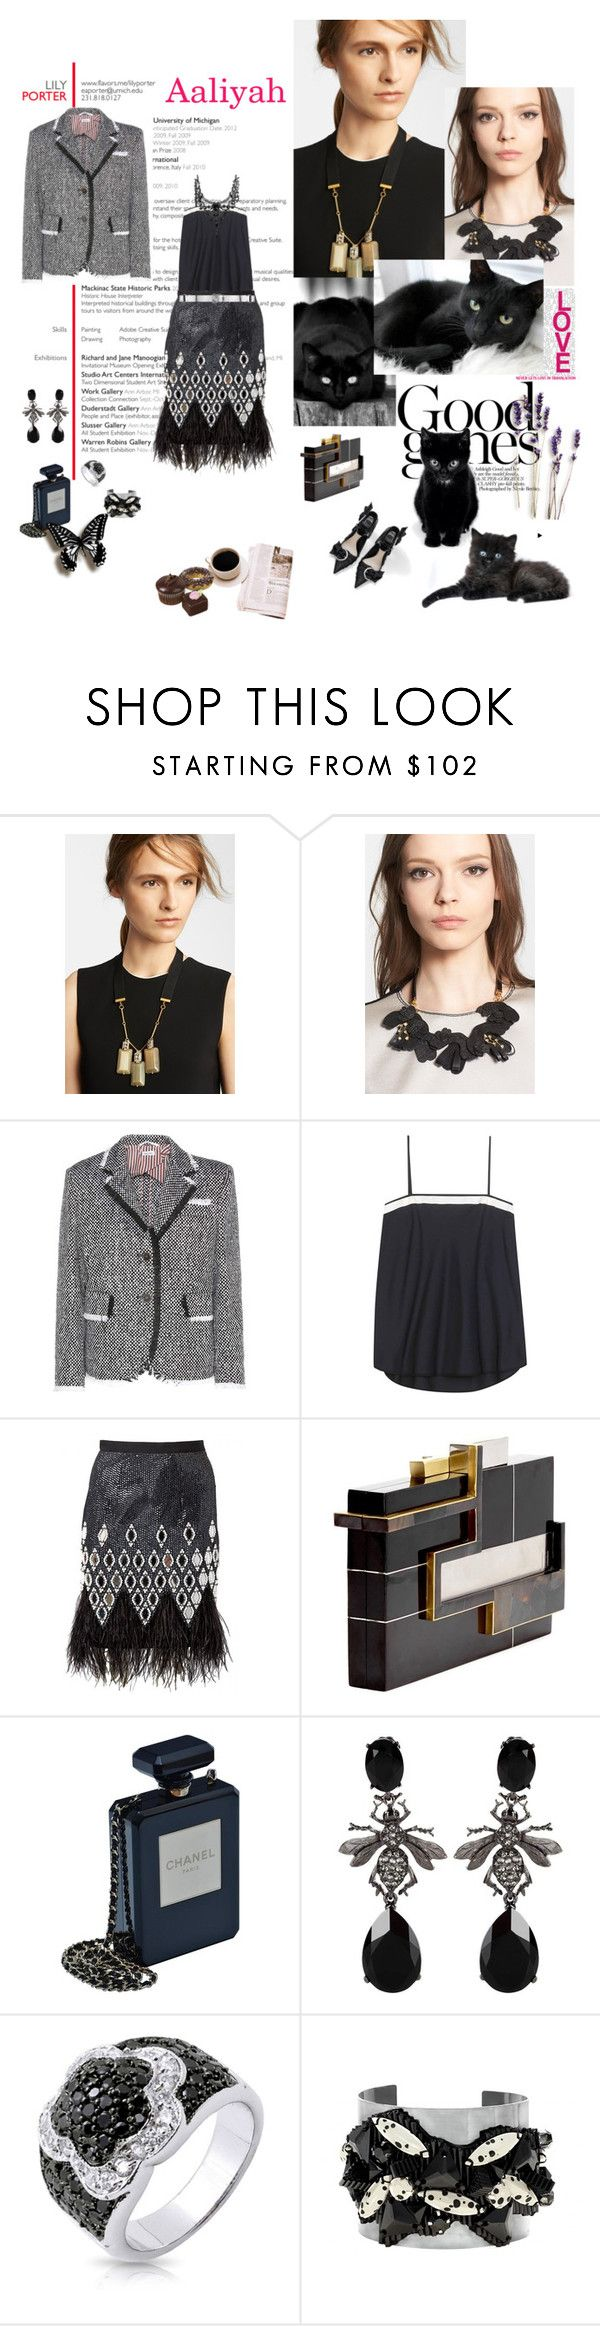 """""""Aaliyah 2016-513"""" by aaliyah ❤ liked on Polyvore featuring Marni, Thom Browne, Matthew Williamson, Jill Haber, Chanel, Oscar de la Renta, Bling Jewelry, Forest of Chintz and polyvoreeditorial"""